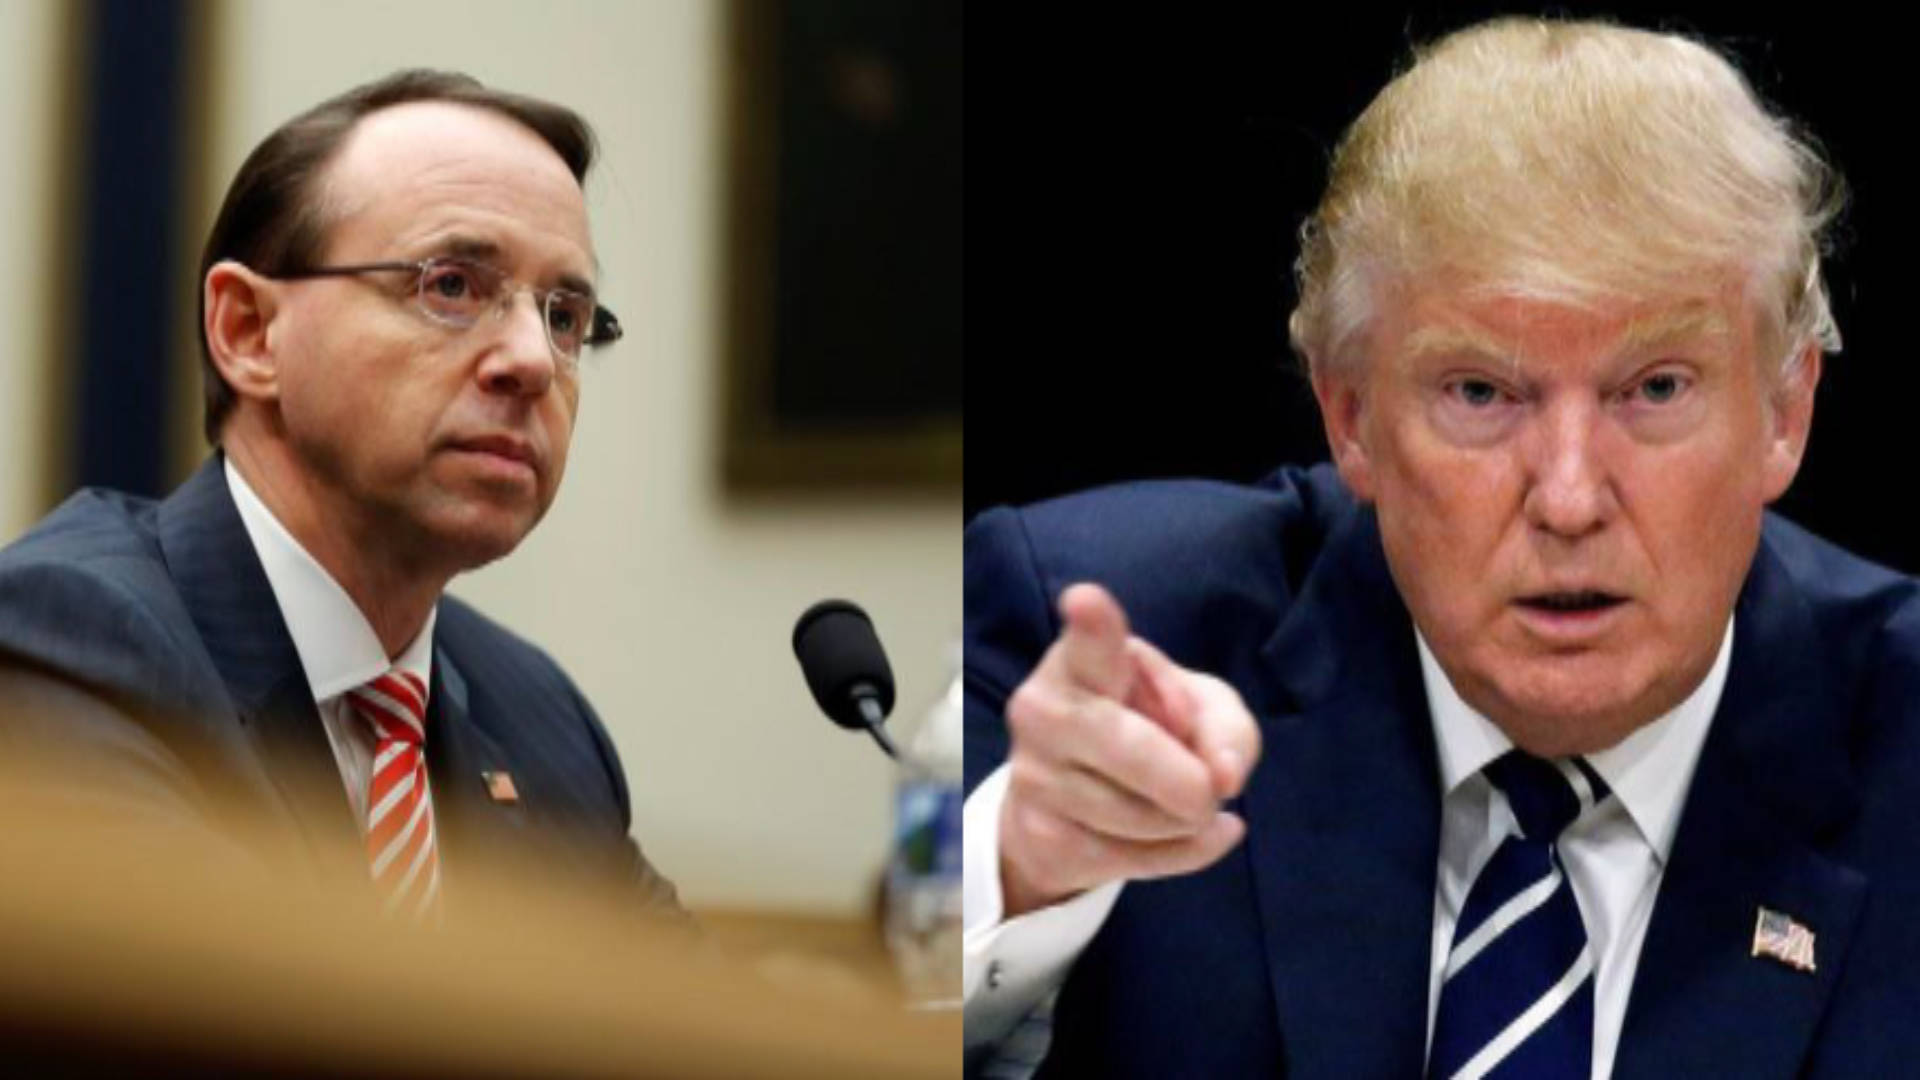 Marcy Wheeler: Rosenstein's Ouster Would Not Necessarily